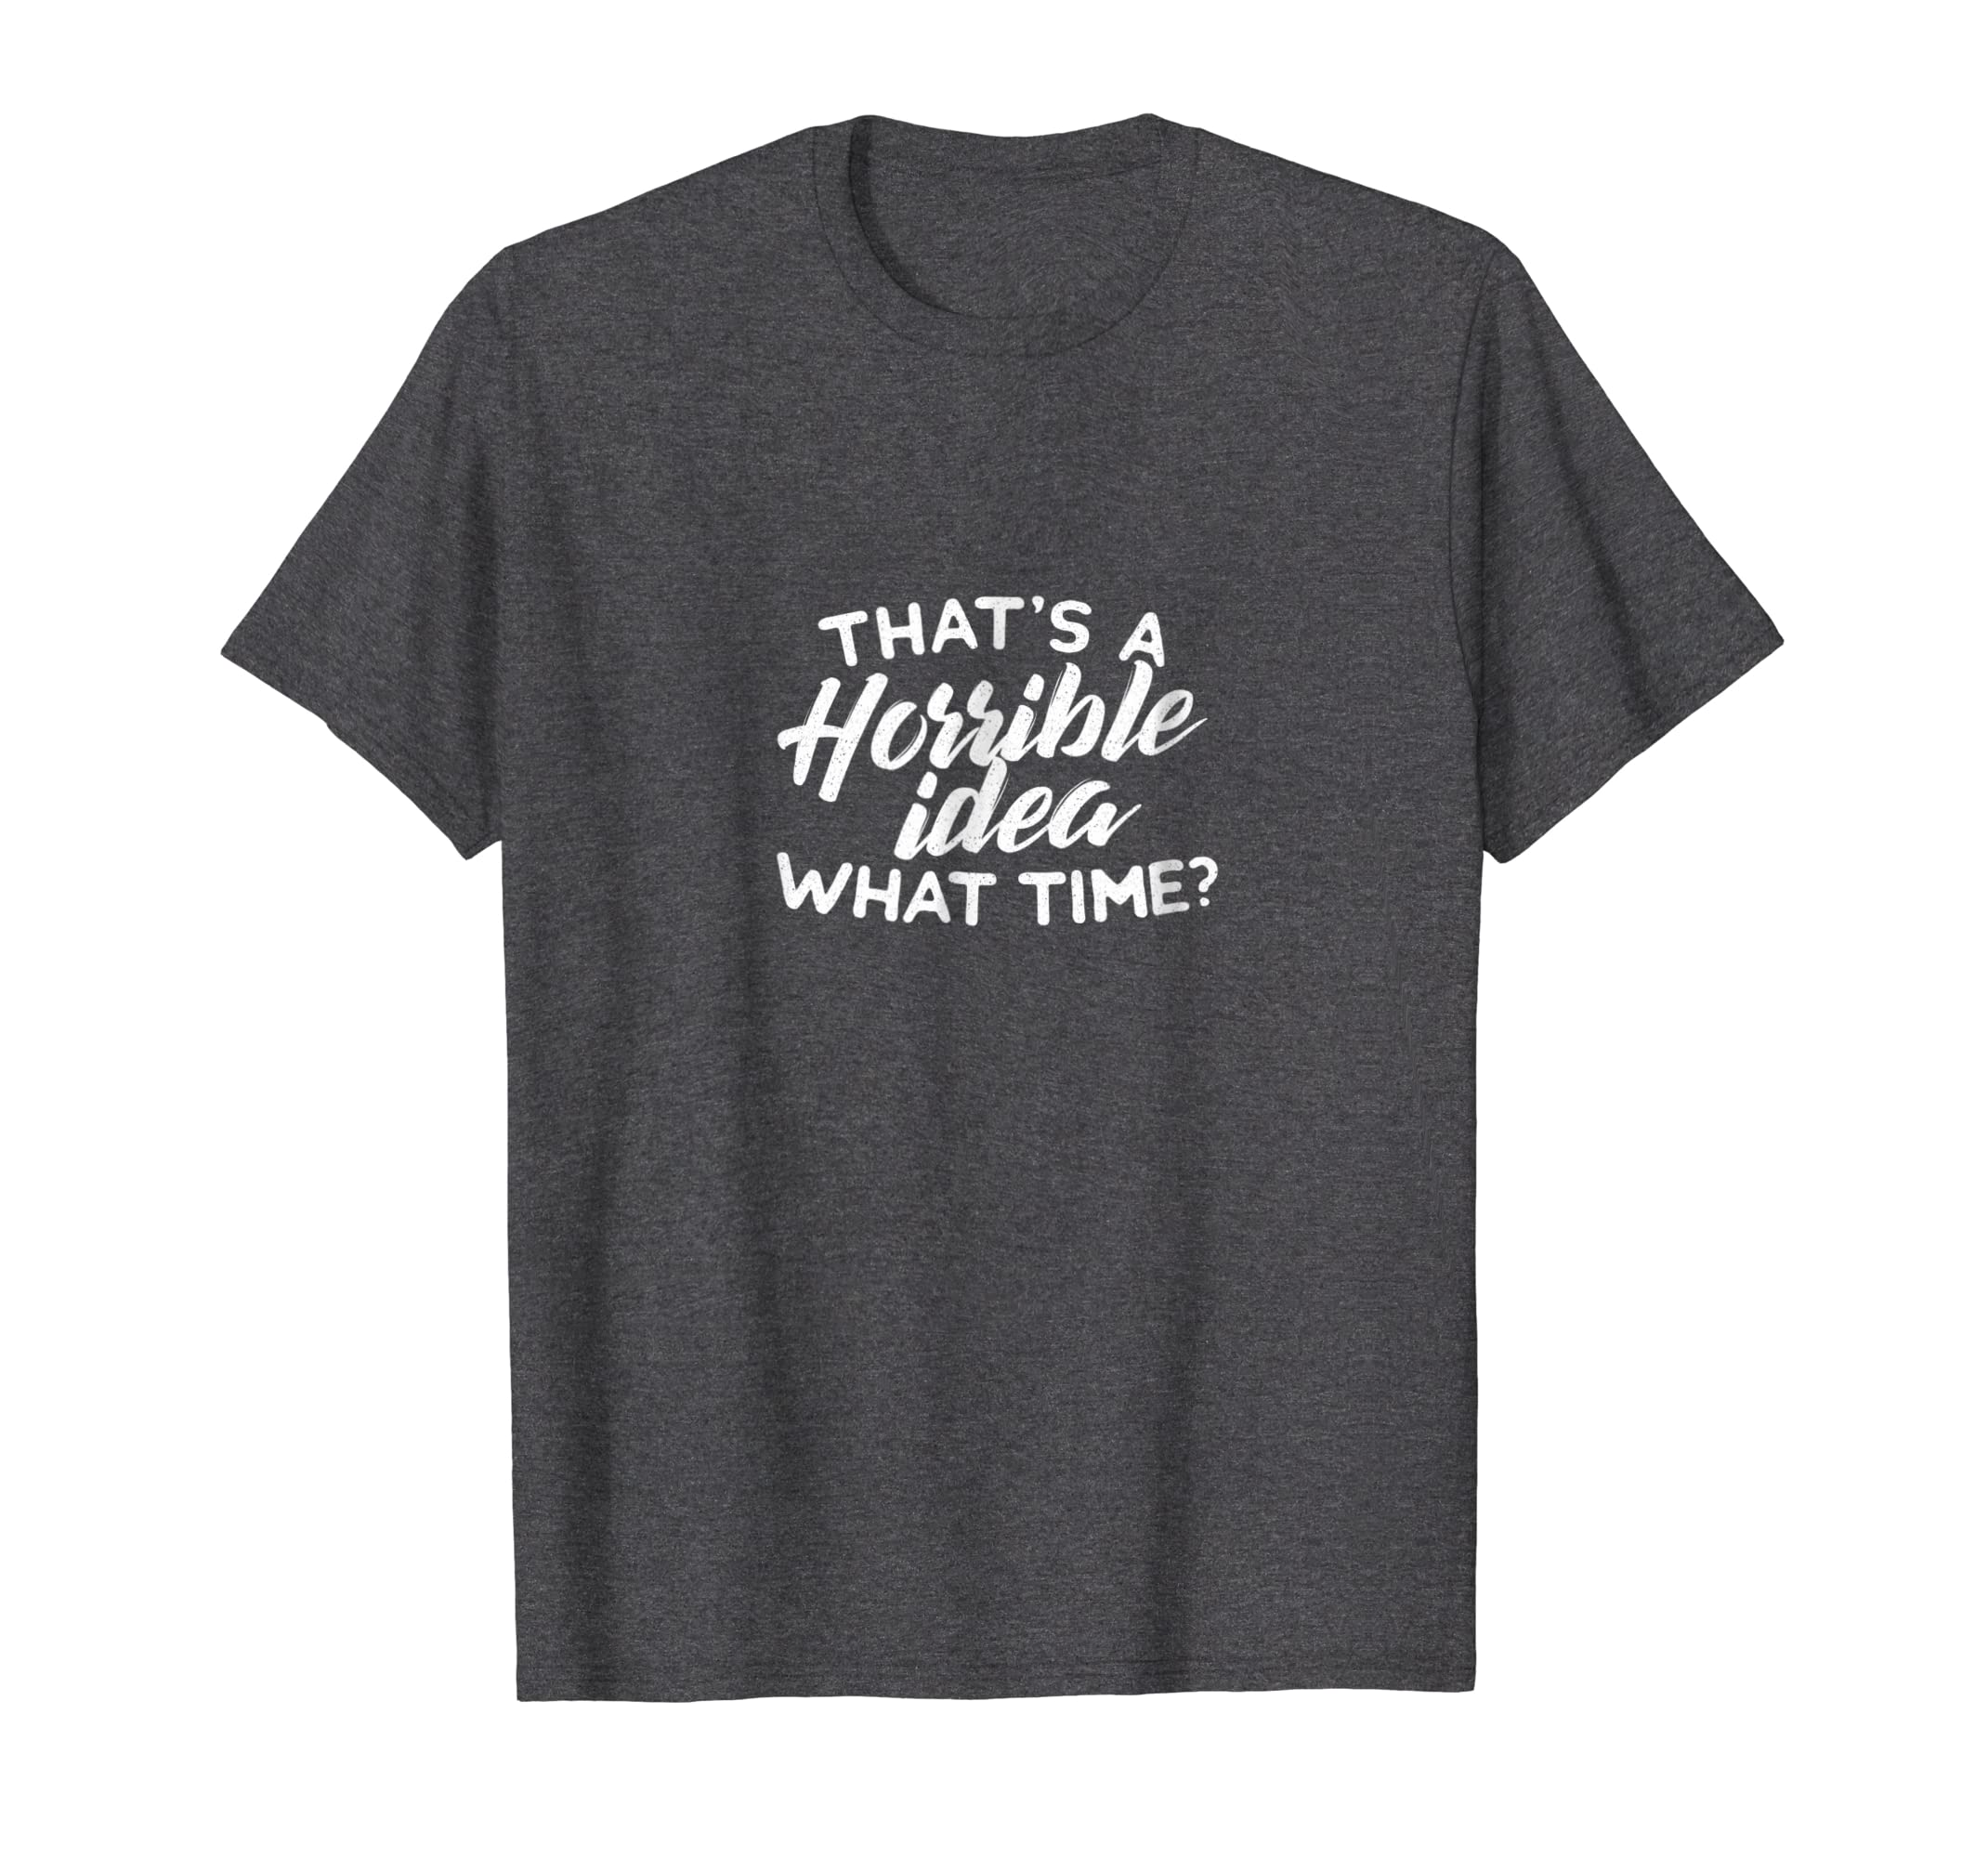 Thats A Horrible A Idea What Time   Funny Adventure T Shirt-Awarplus